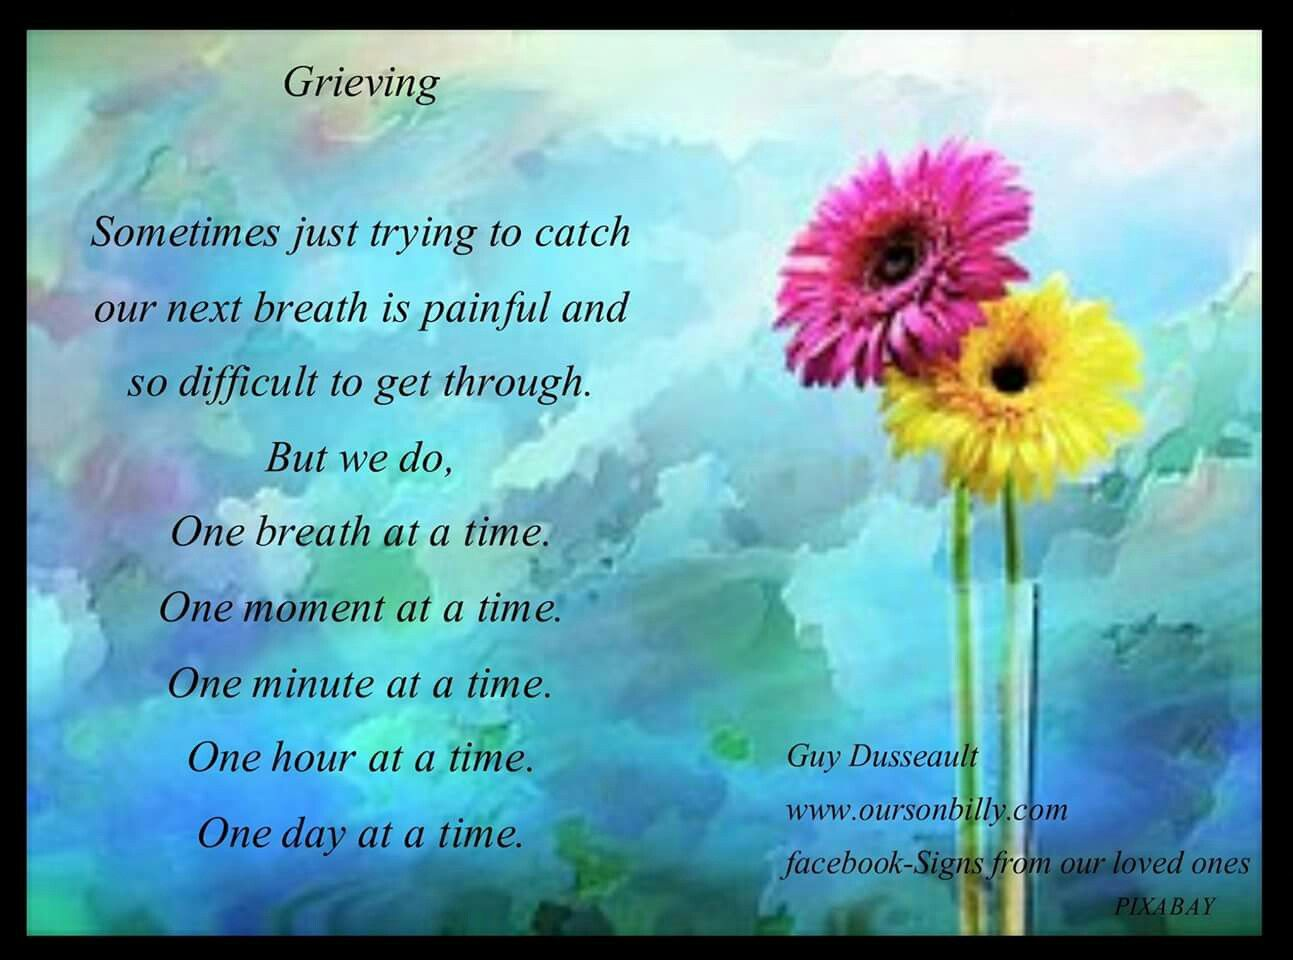 Inspirational Quotes Death Loved One Pindonna Hamm On Dj  Pinterest  Grief Sadness And Feelings